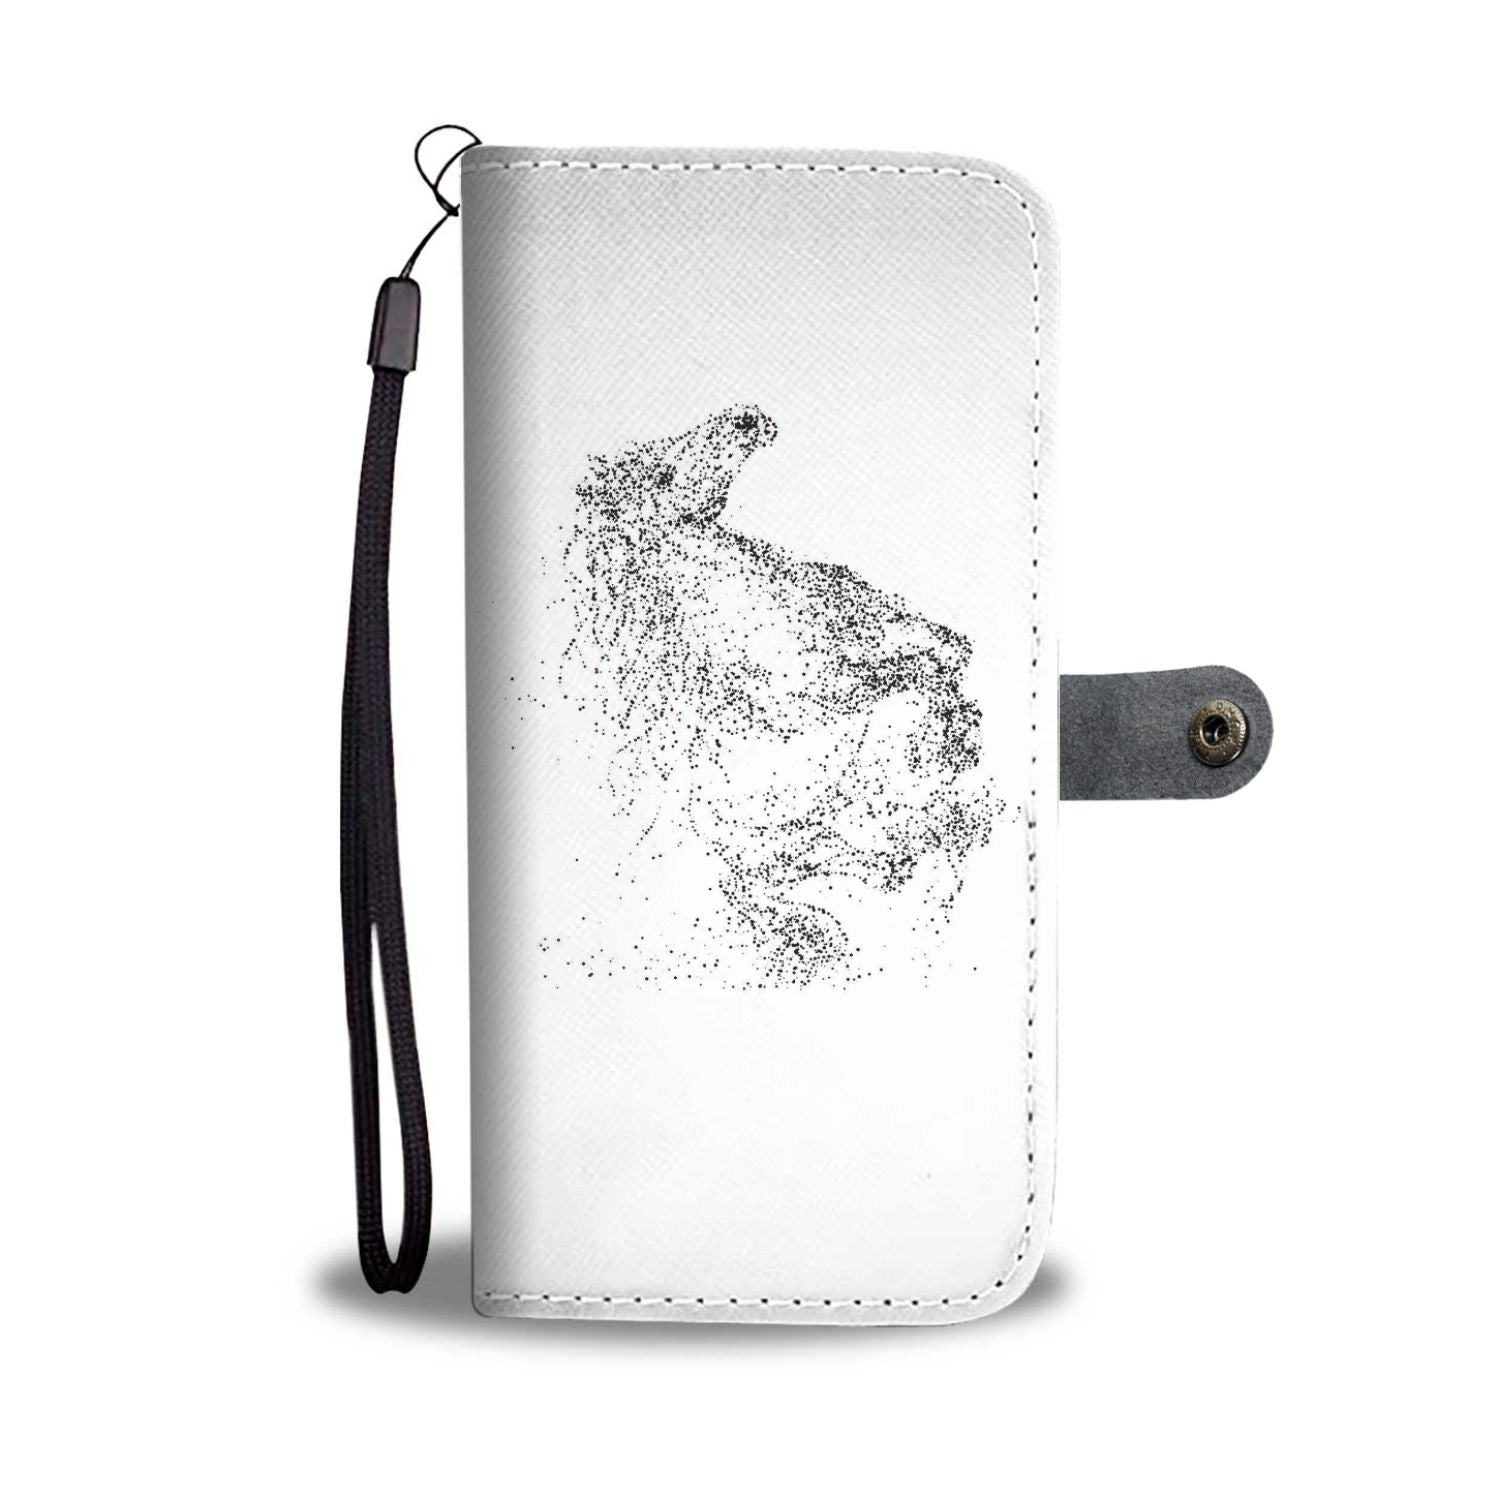 Galloping Horse Wallet - Hello Moa